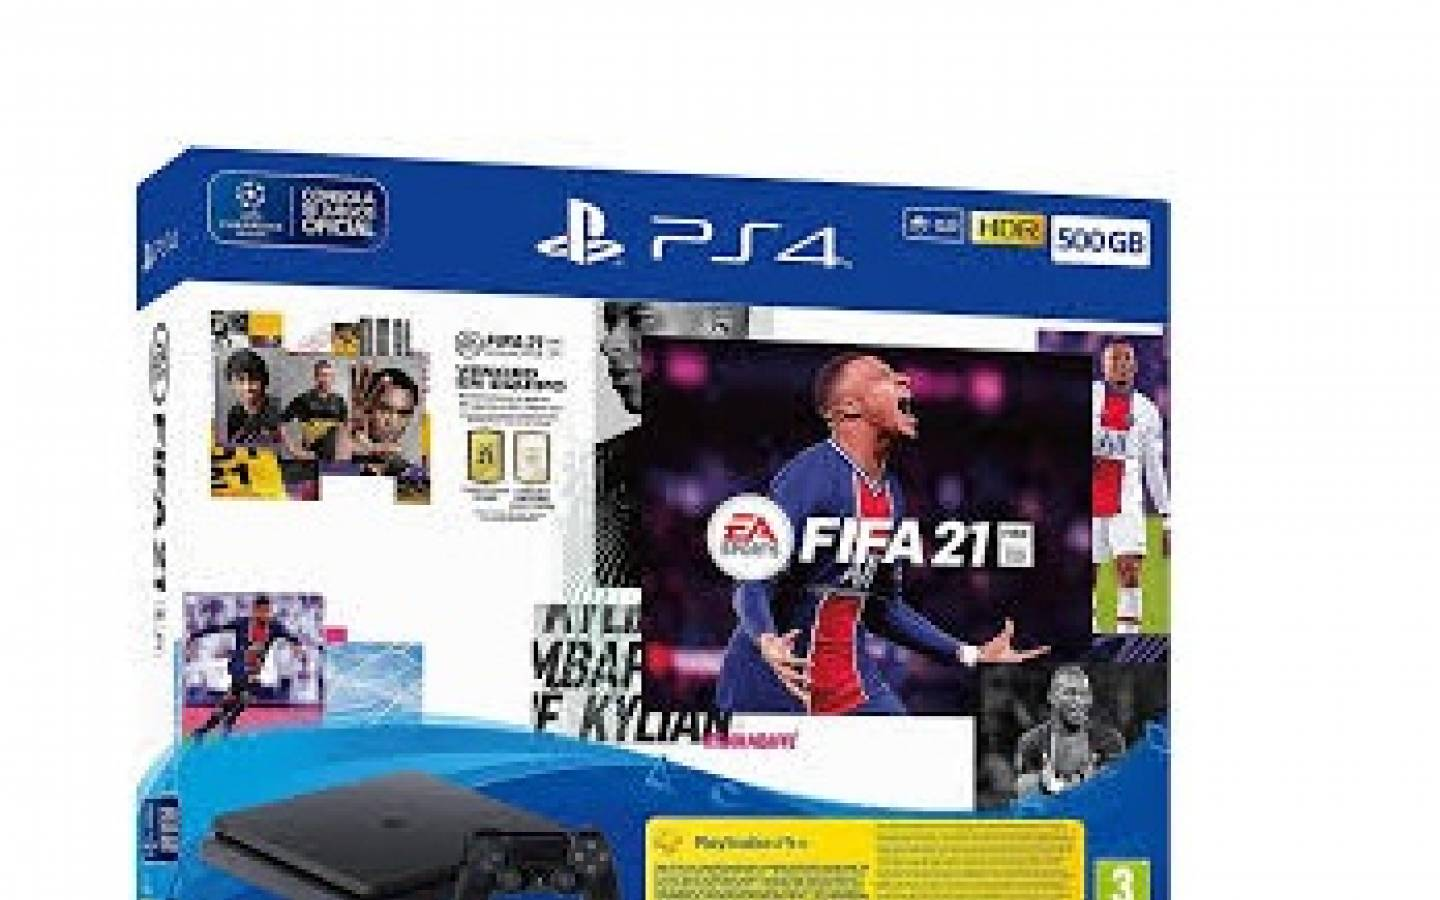 Playstation 4 Slim 1 TB + FIFA 21